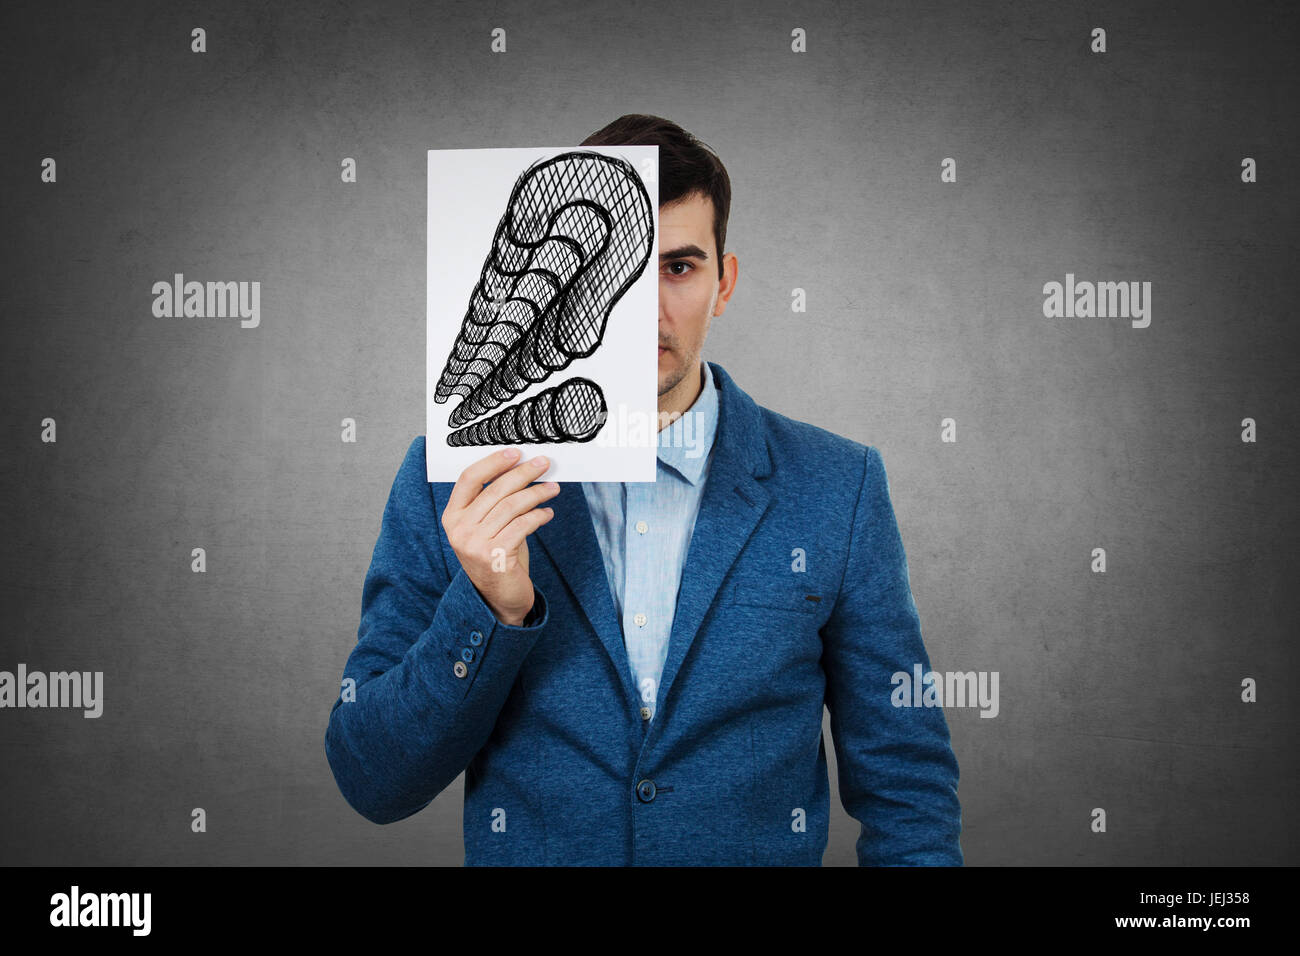 Portrait of a sad businessman, hiding half his face using a white paper drawn with questions marks.Sad student hiding - Stock Image